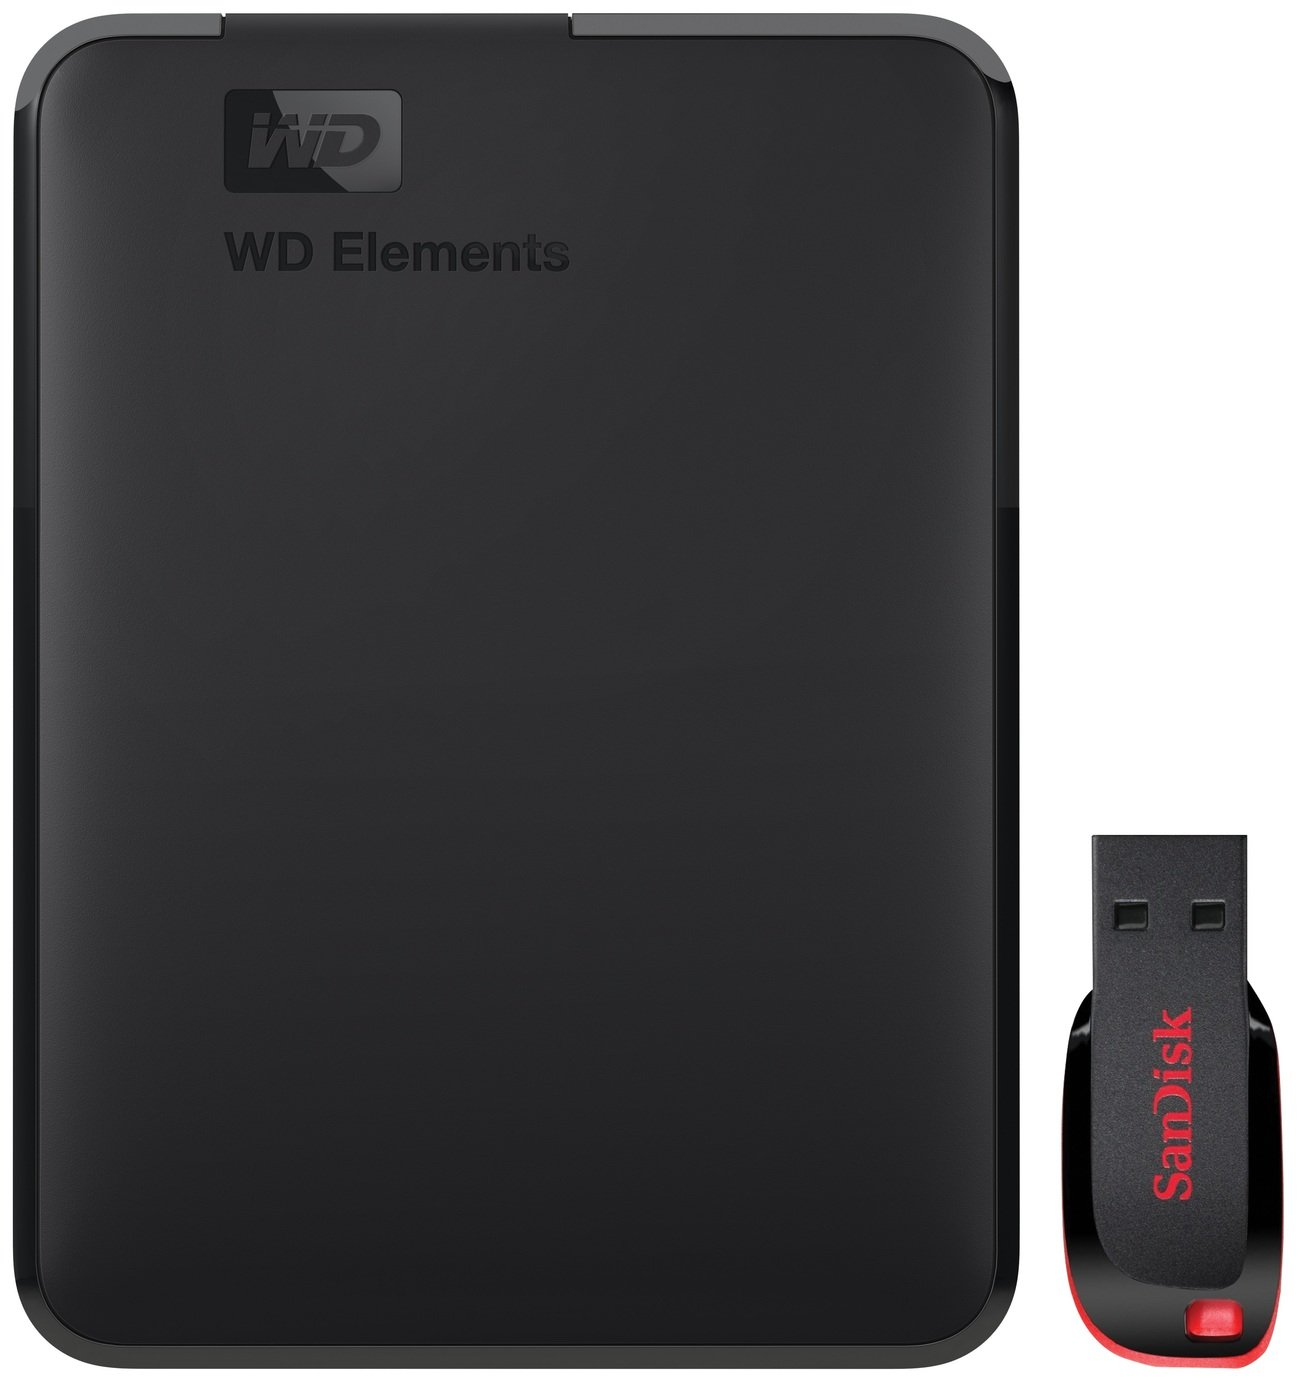 WD Elements 1TB + 32GB Portable Hard Drive review